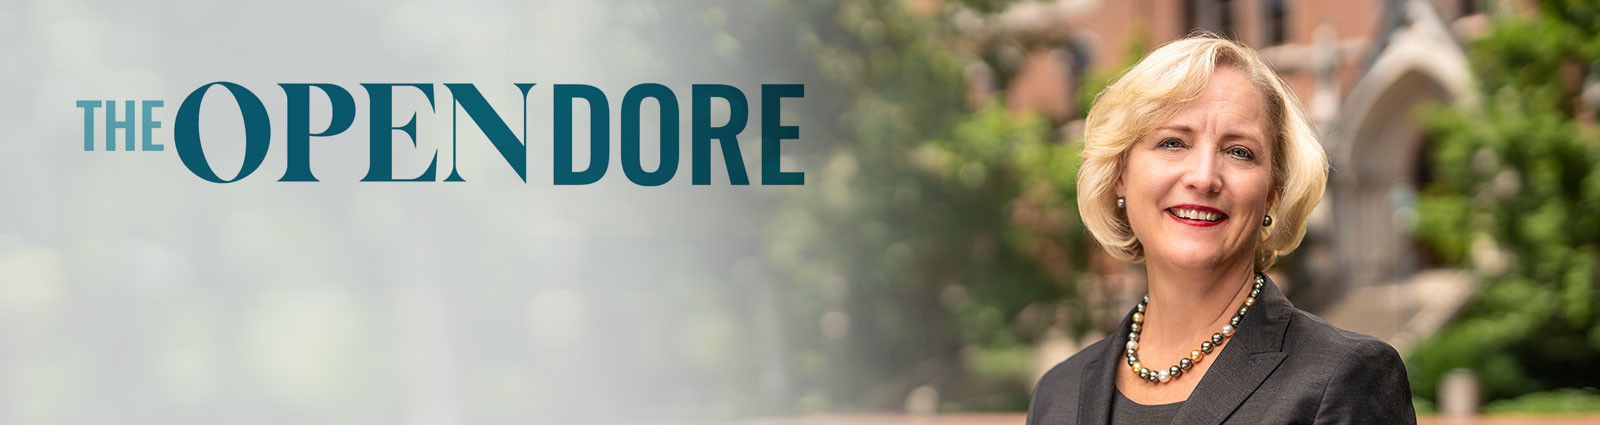 The Open Dore: Get the latest updates and information from Interim Chancellor and Provost Wente in the Open Dore newsletter and videos.